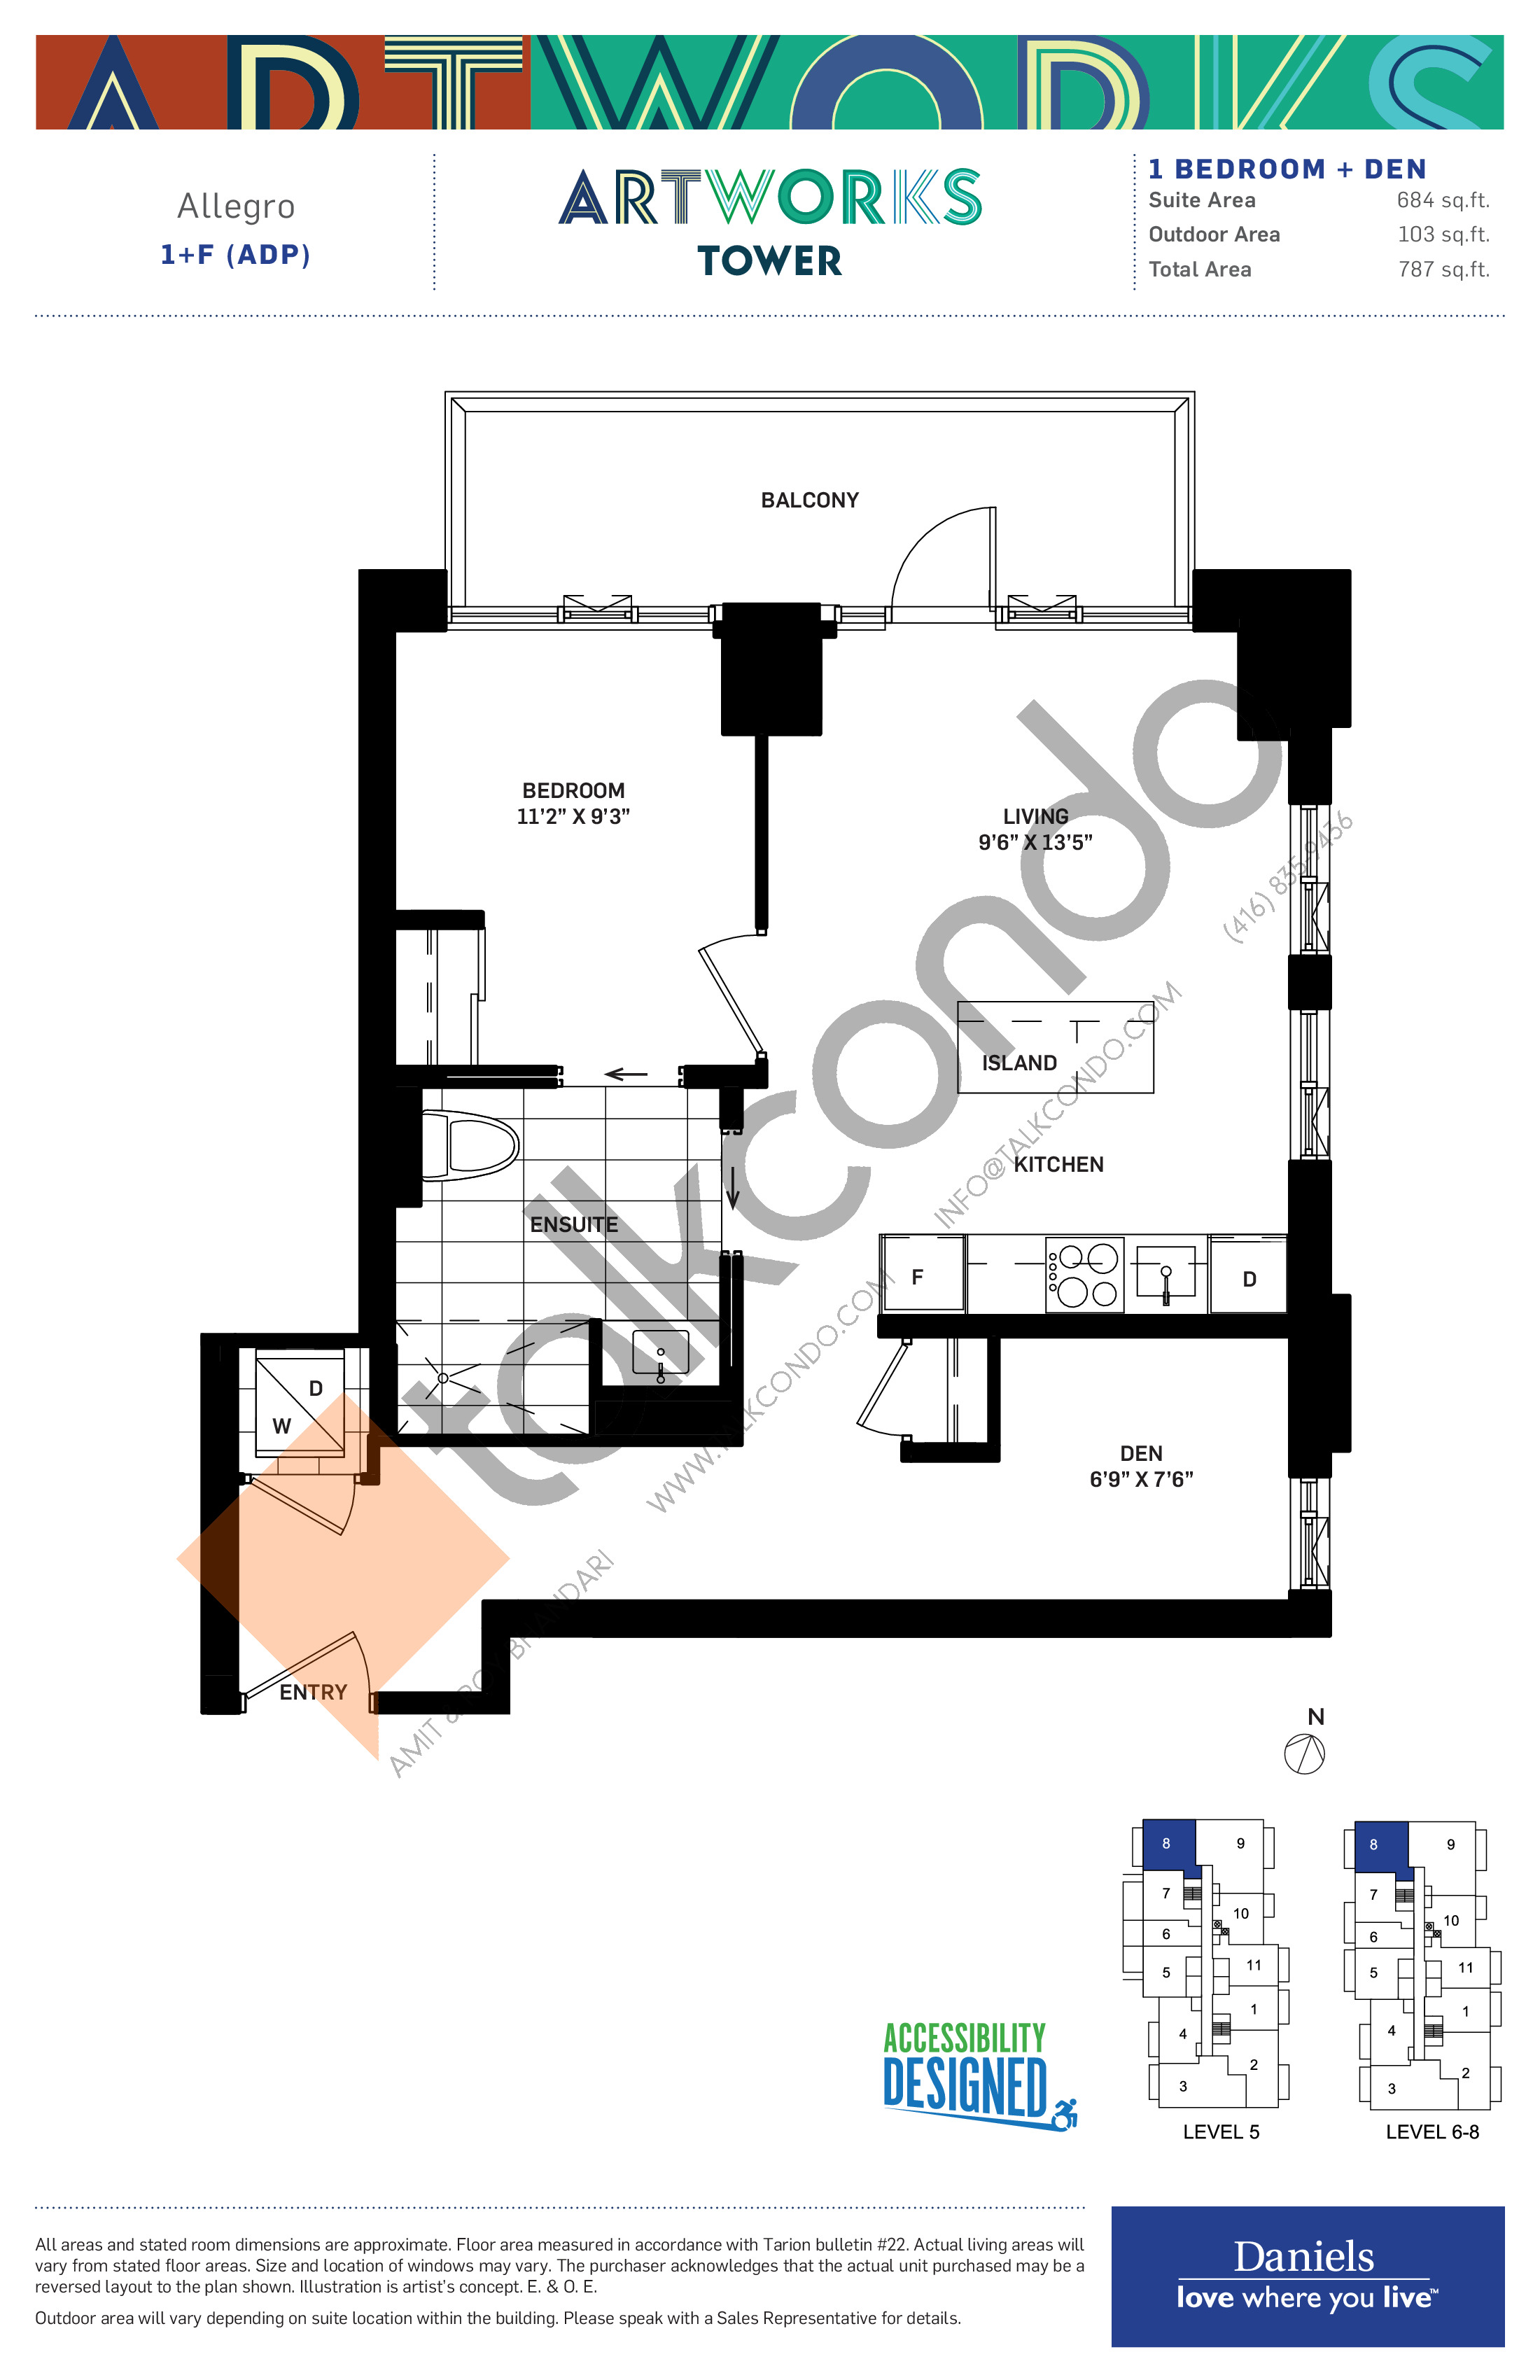 Allegro Floor Plan at Artworks Tower Condos - 684 sq.ft